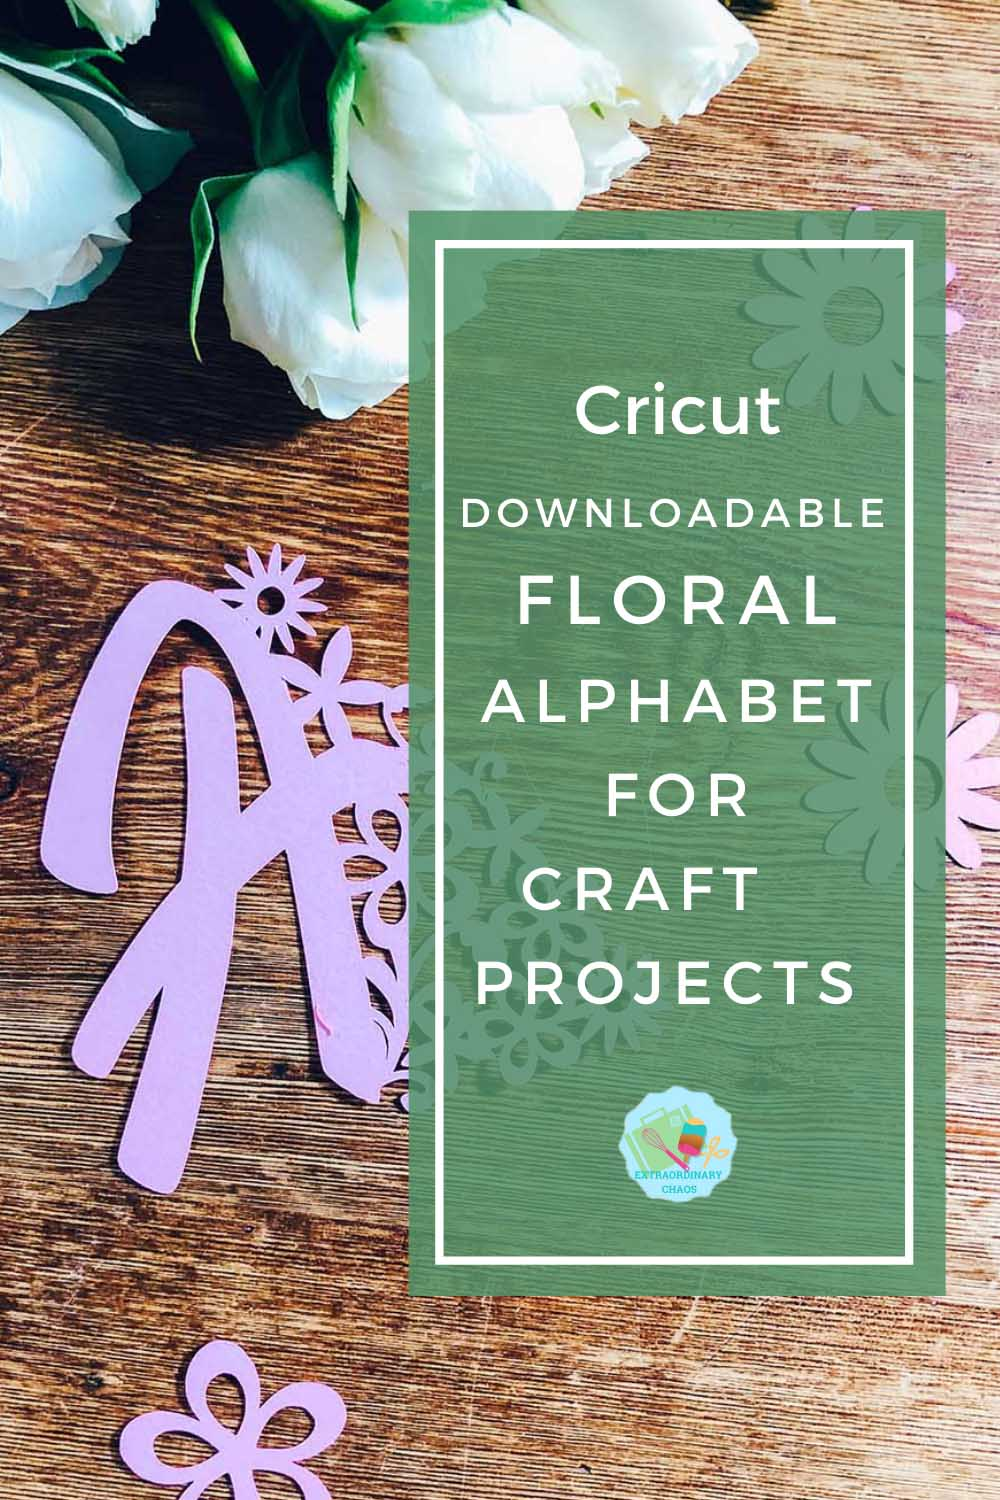 Downloadable Floral Cricut Alphabet For Crafting